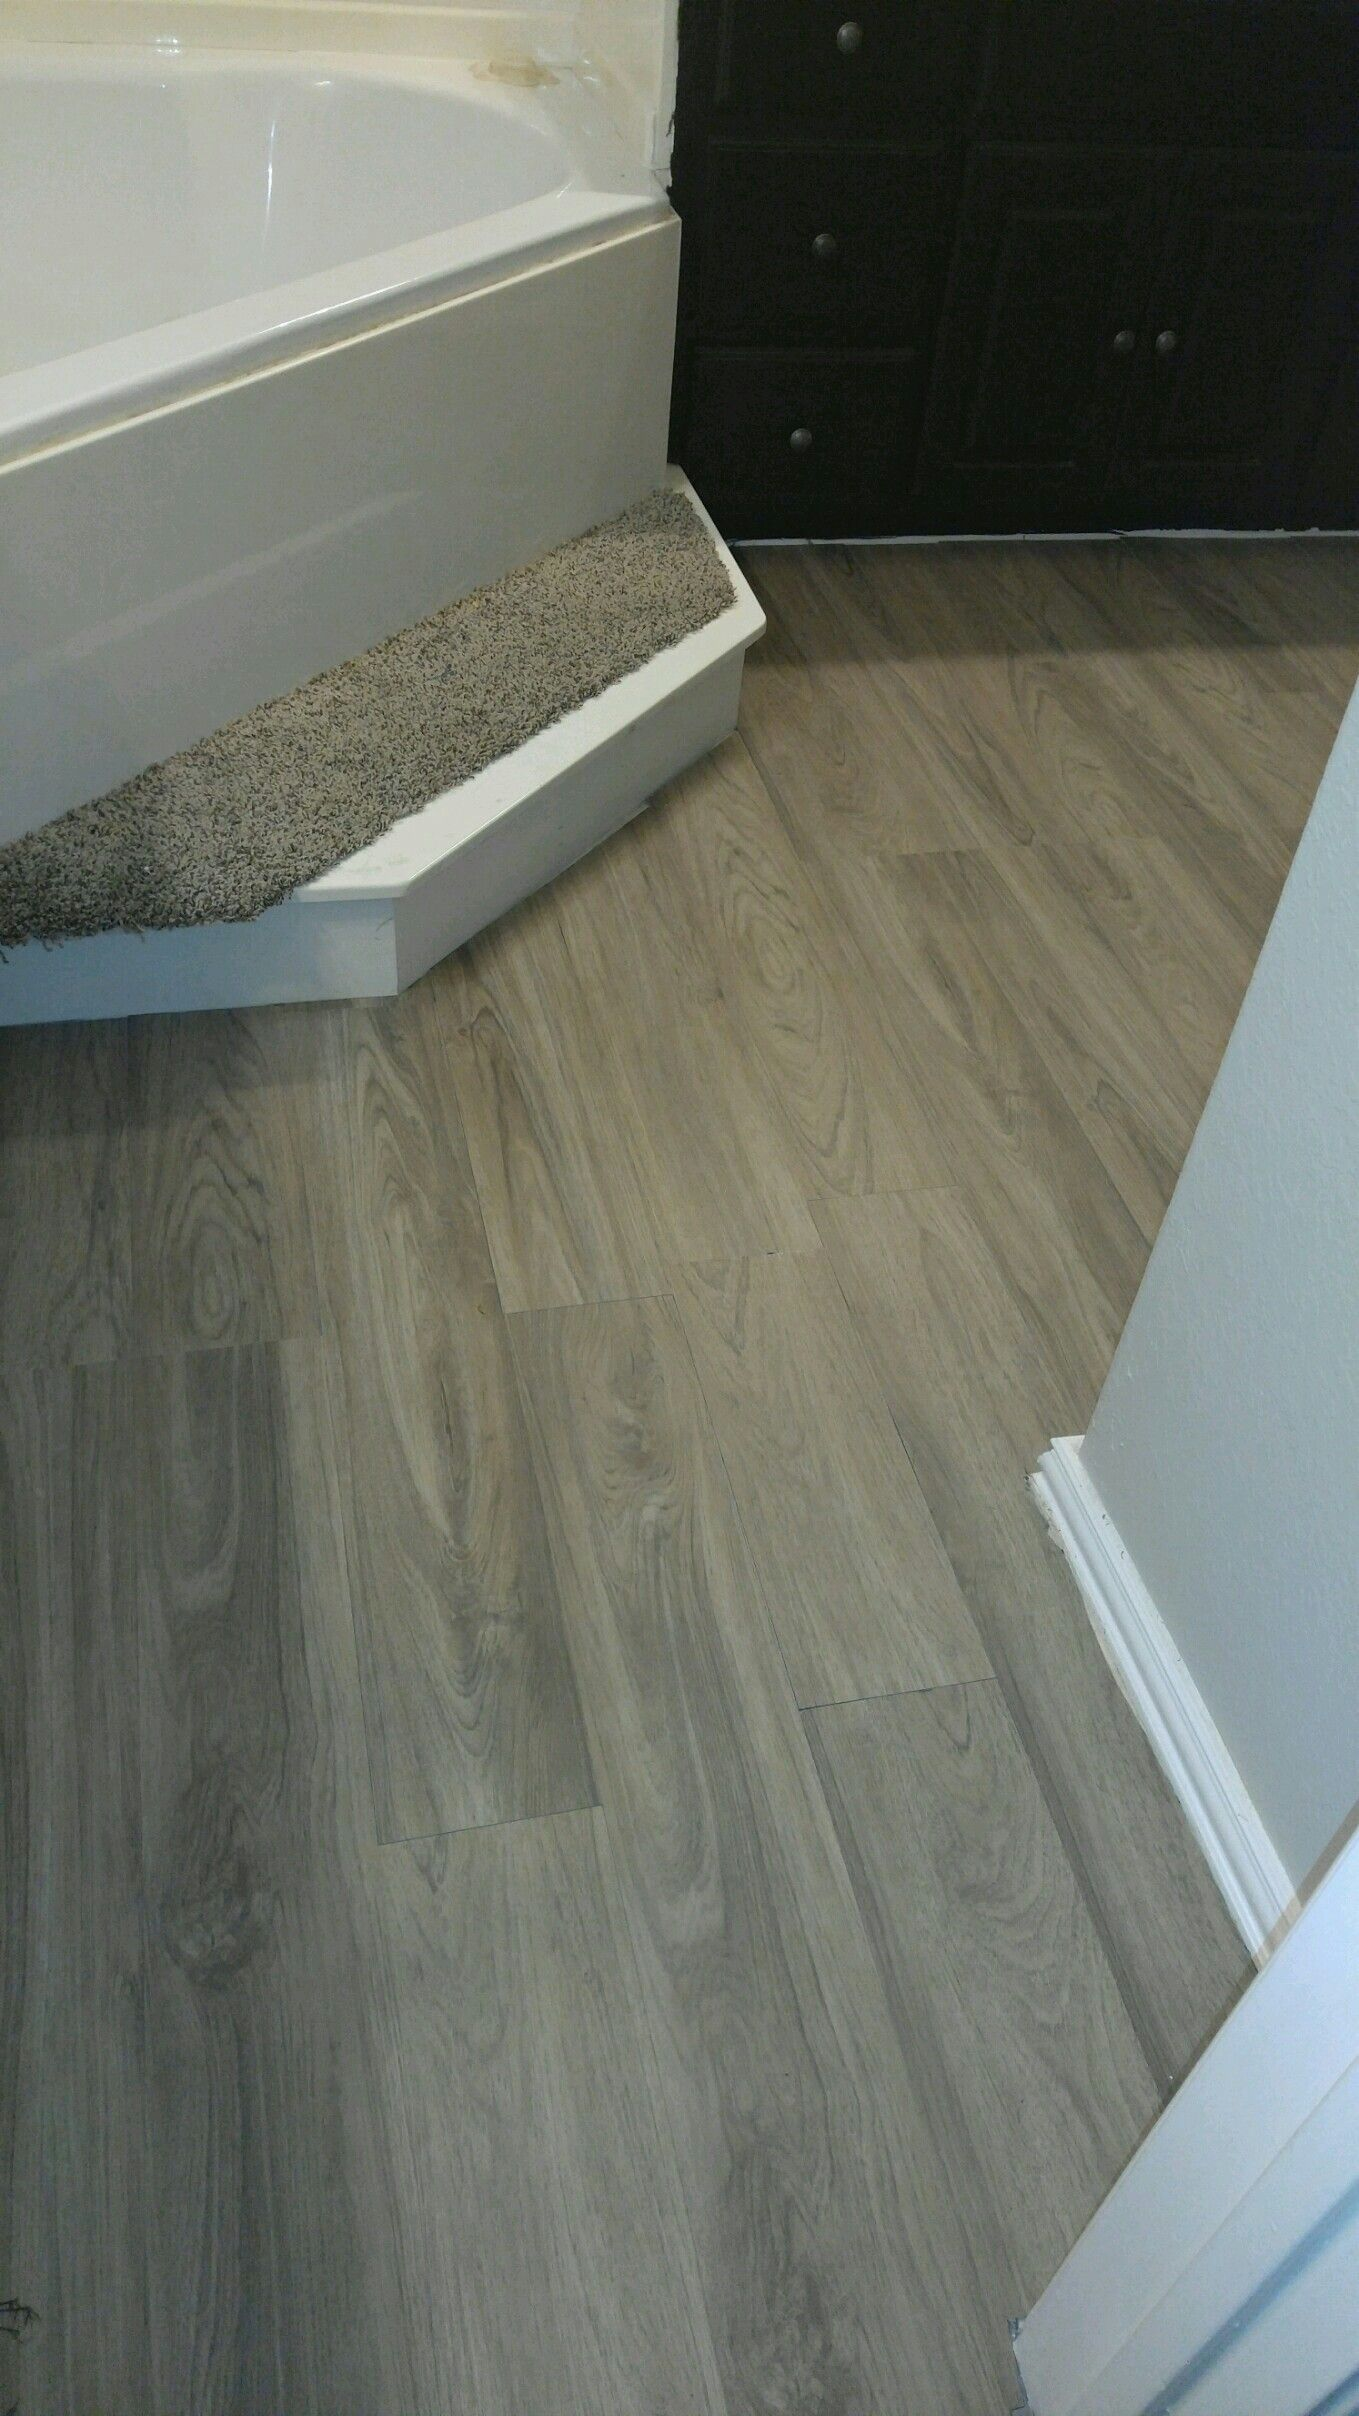 Vinyl Plank Master Bathroom: I Did This Myself, Vinyl Plank Flooring Over Tile